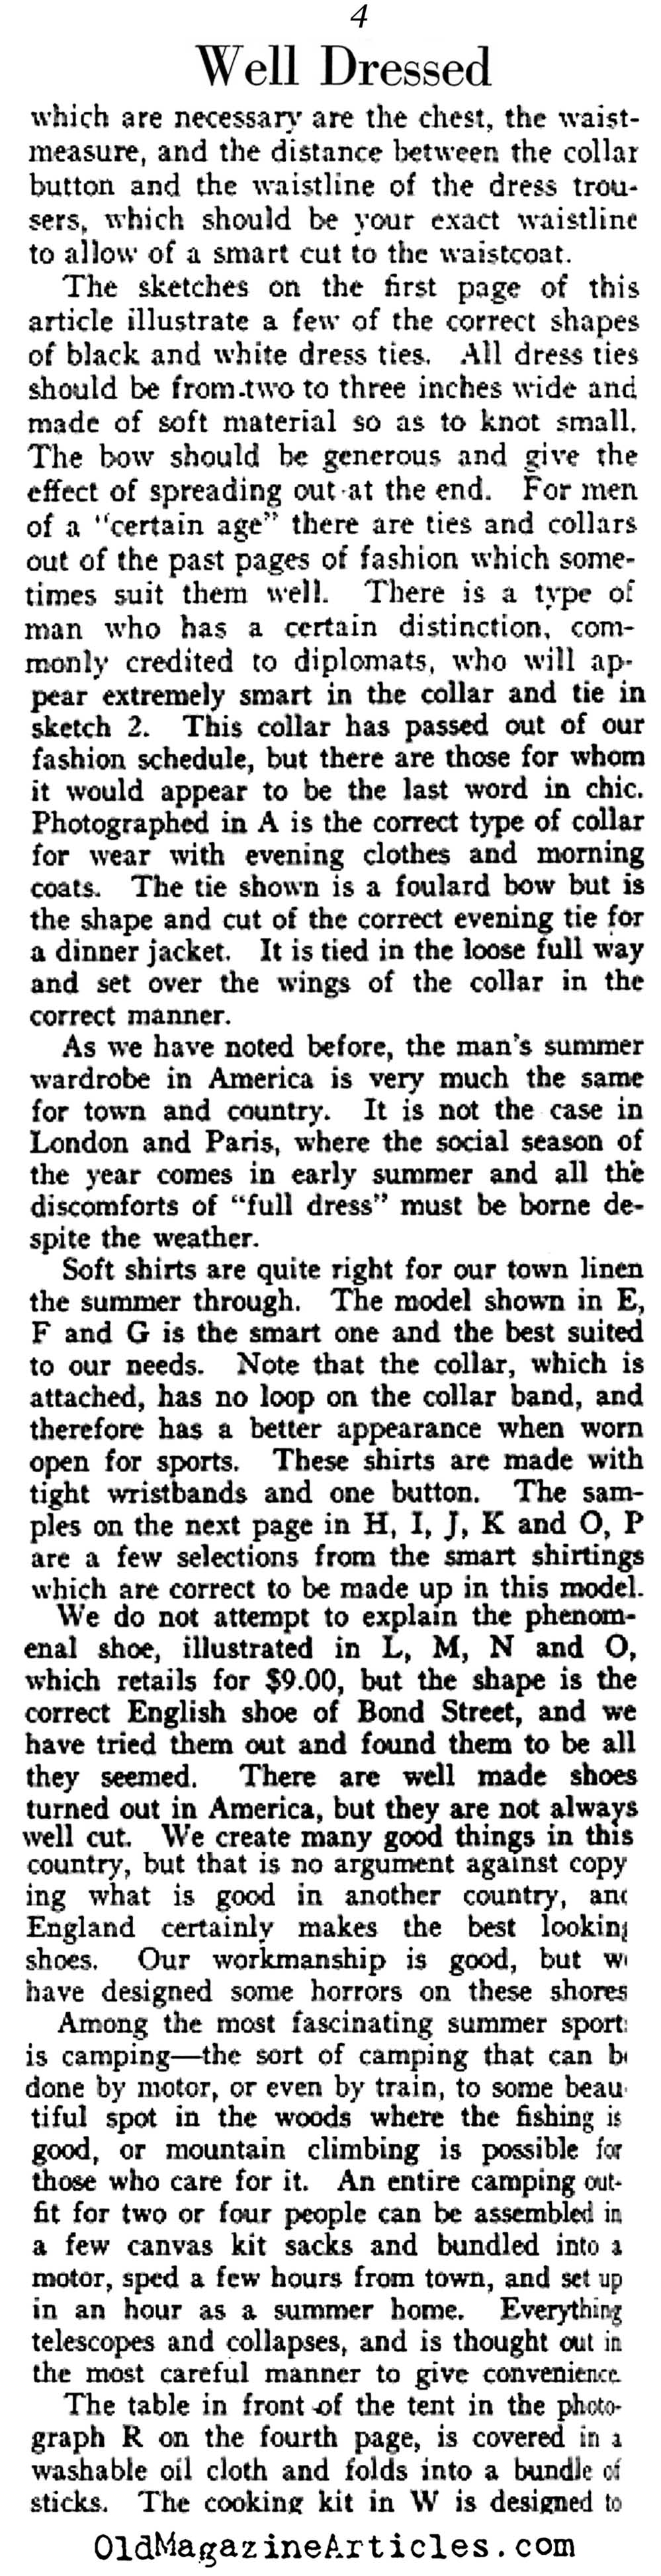 Much Talk of White Waistcoats, Shoes and Shirts  (Vanity Fair Magazine, 1921)